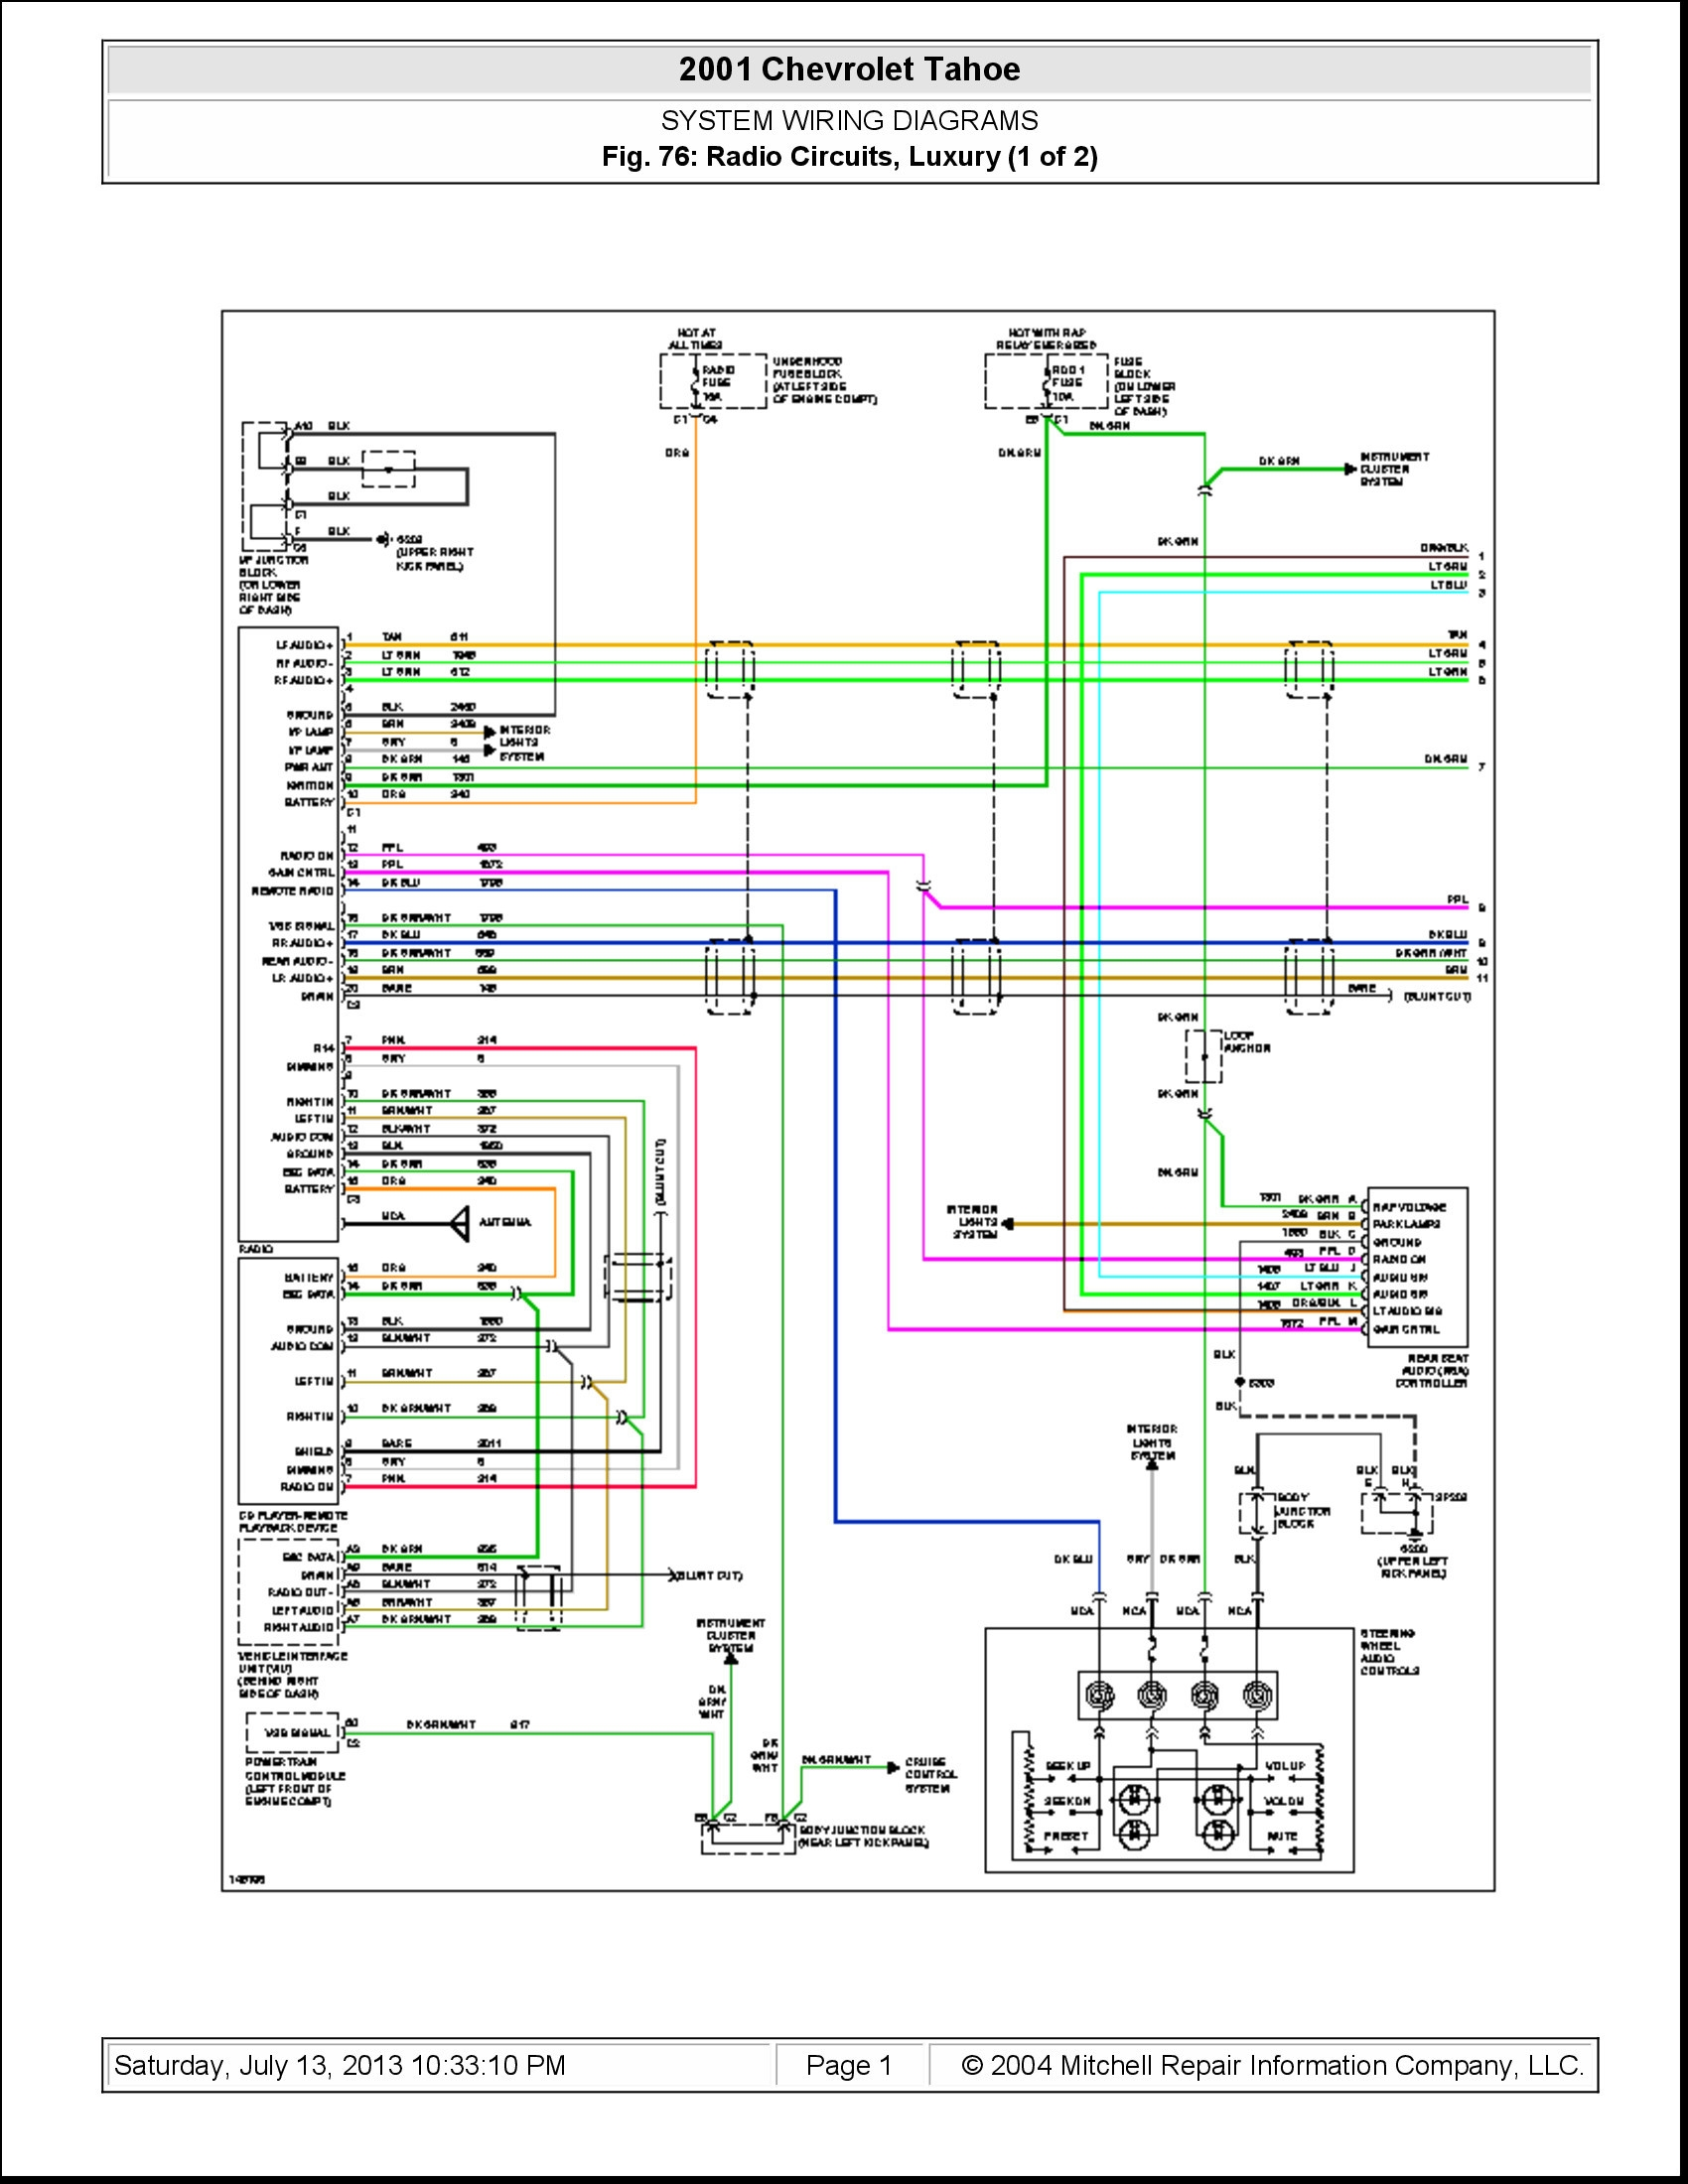 Chevy S10 Radio Wiring Diagram | Free Wiring Diagram